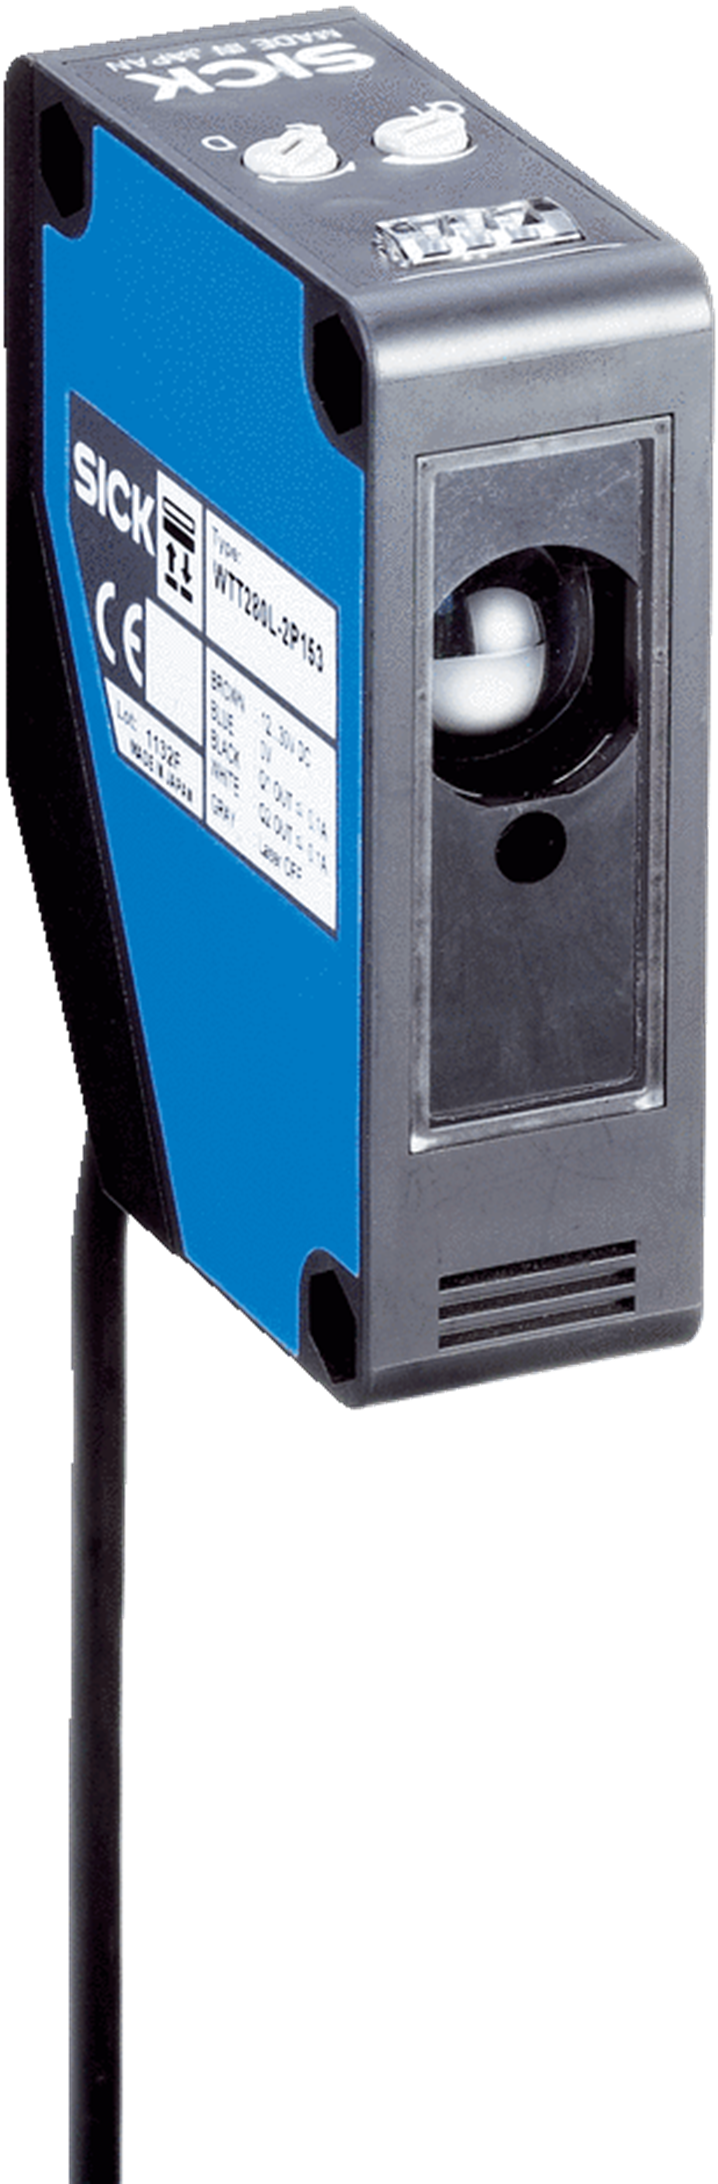 WTT280L-2P2531 MultiTask photoelectric sensors - Image - 1